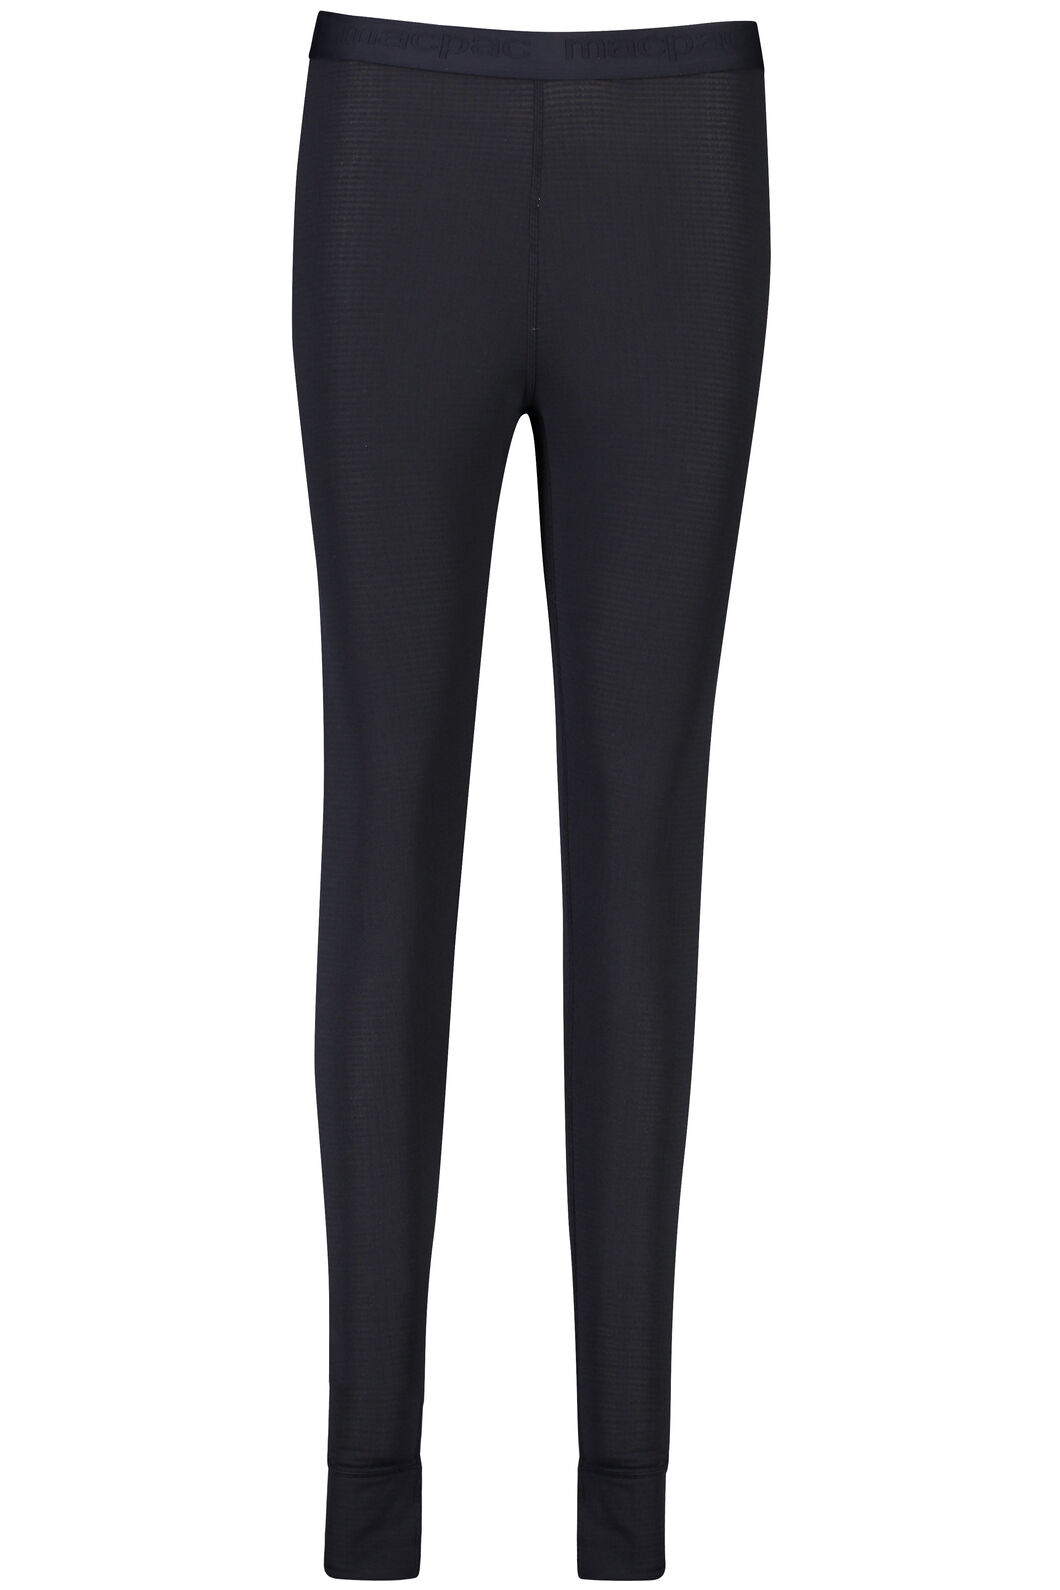 Macpac ProThermal Long Johns - Women's, Black, hi-res